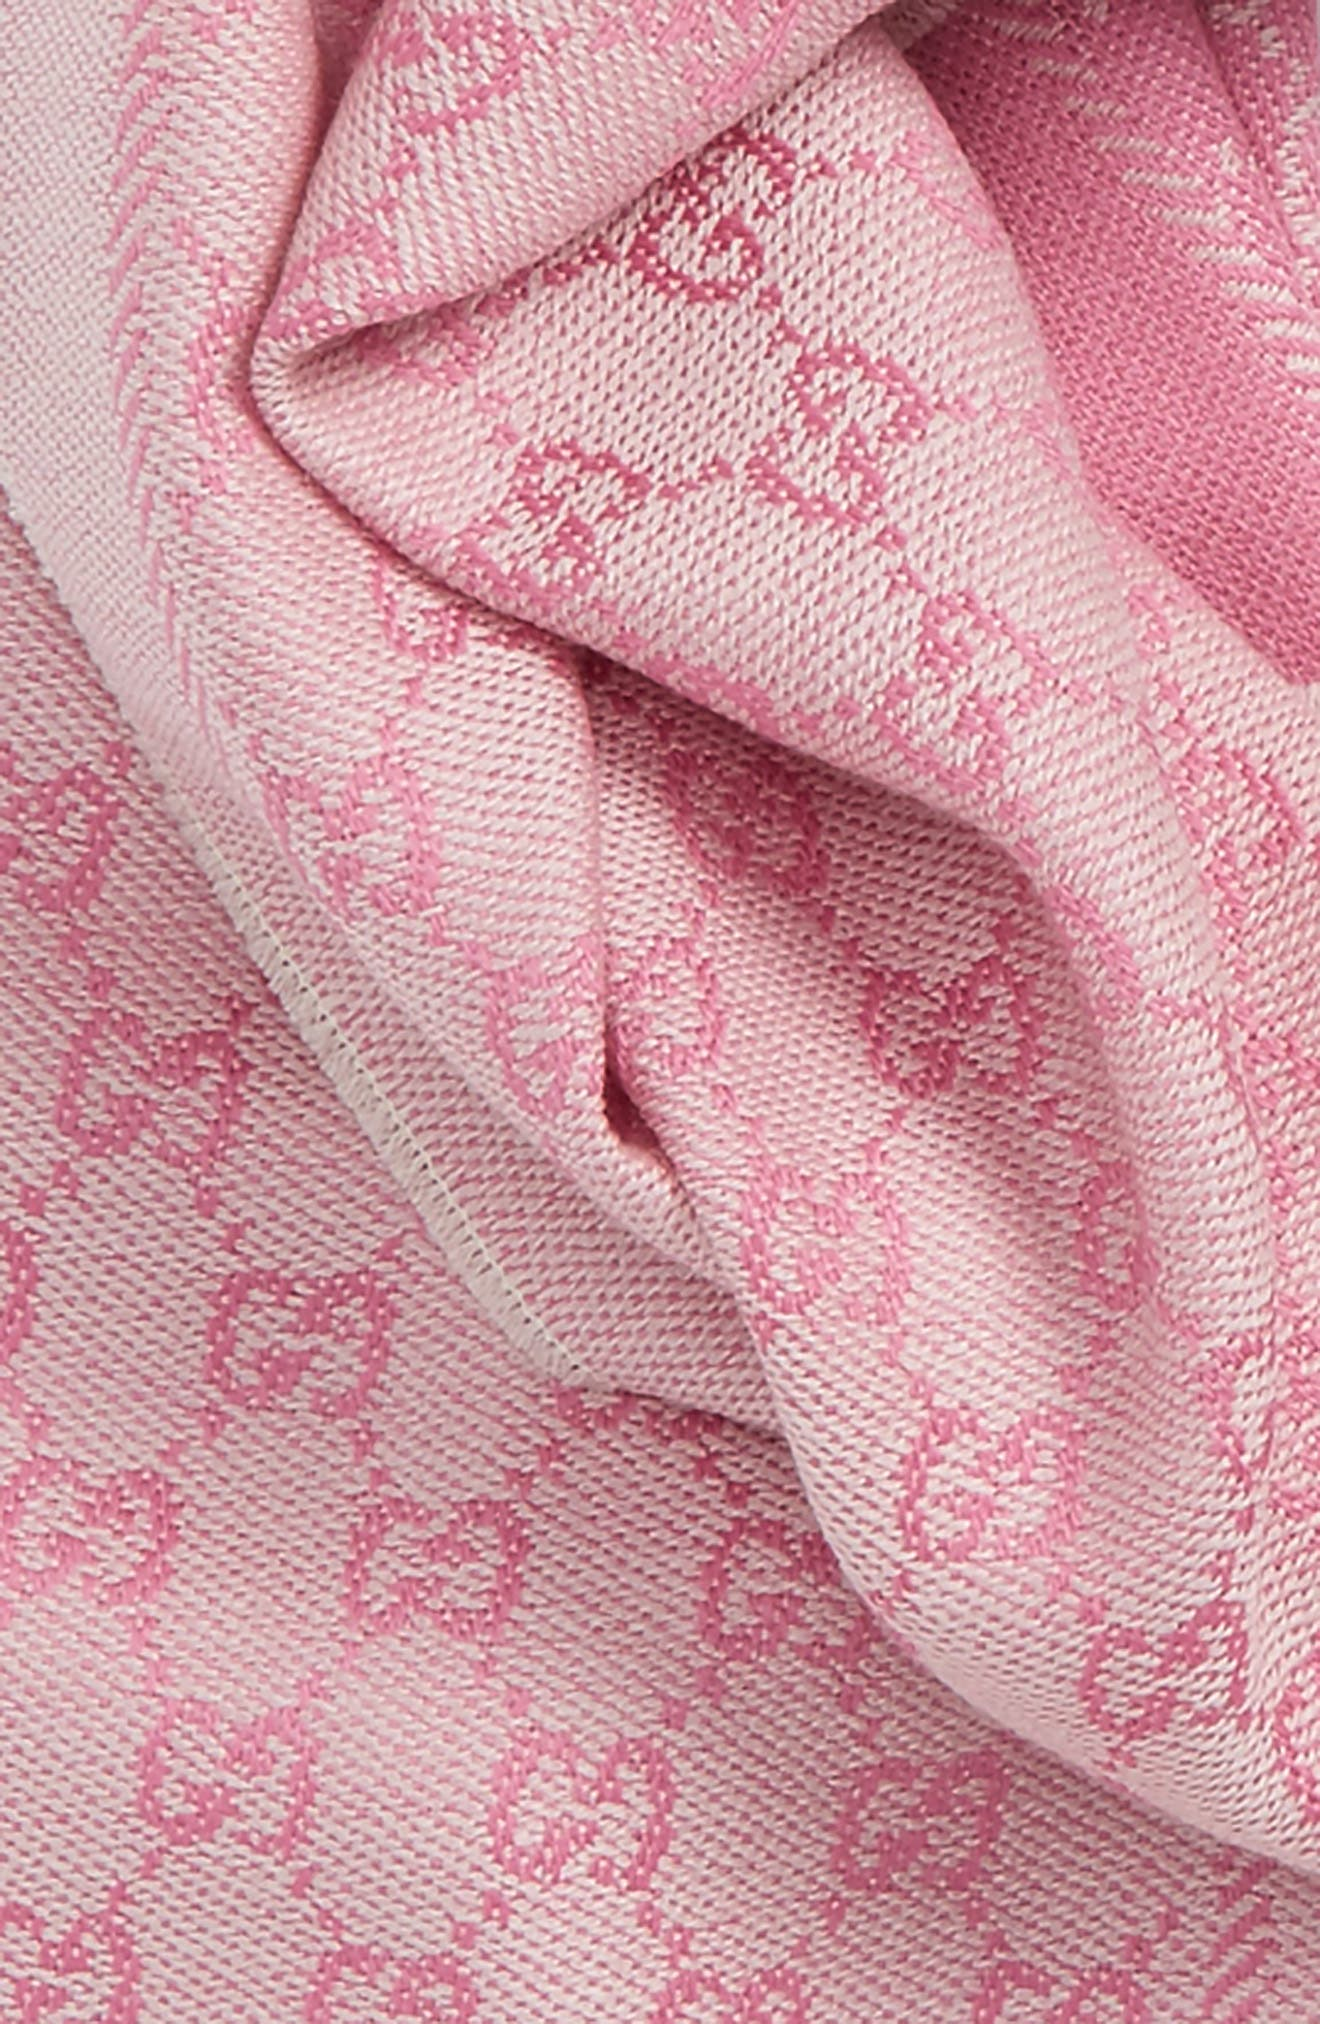 GG Jacquard Wool Scarf,                             Alternate thumbnail 3, color,                             900